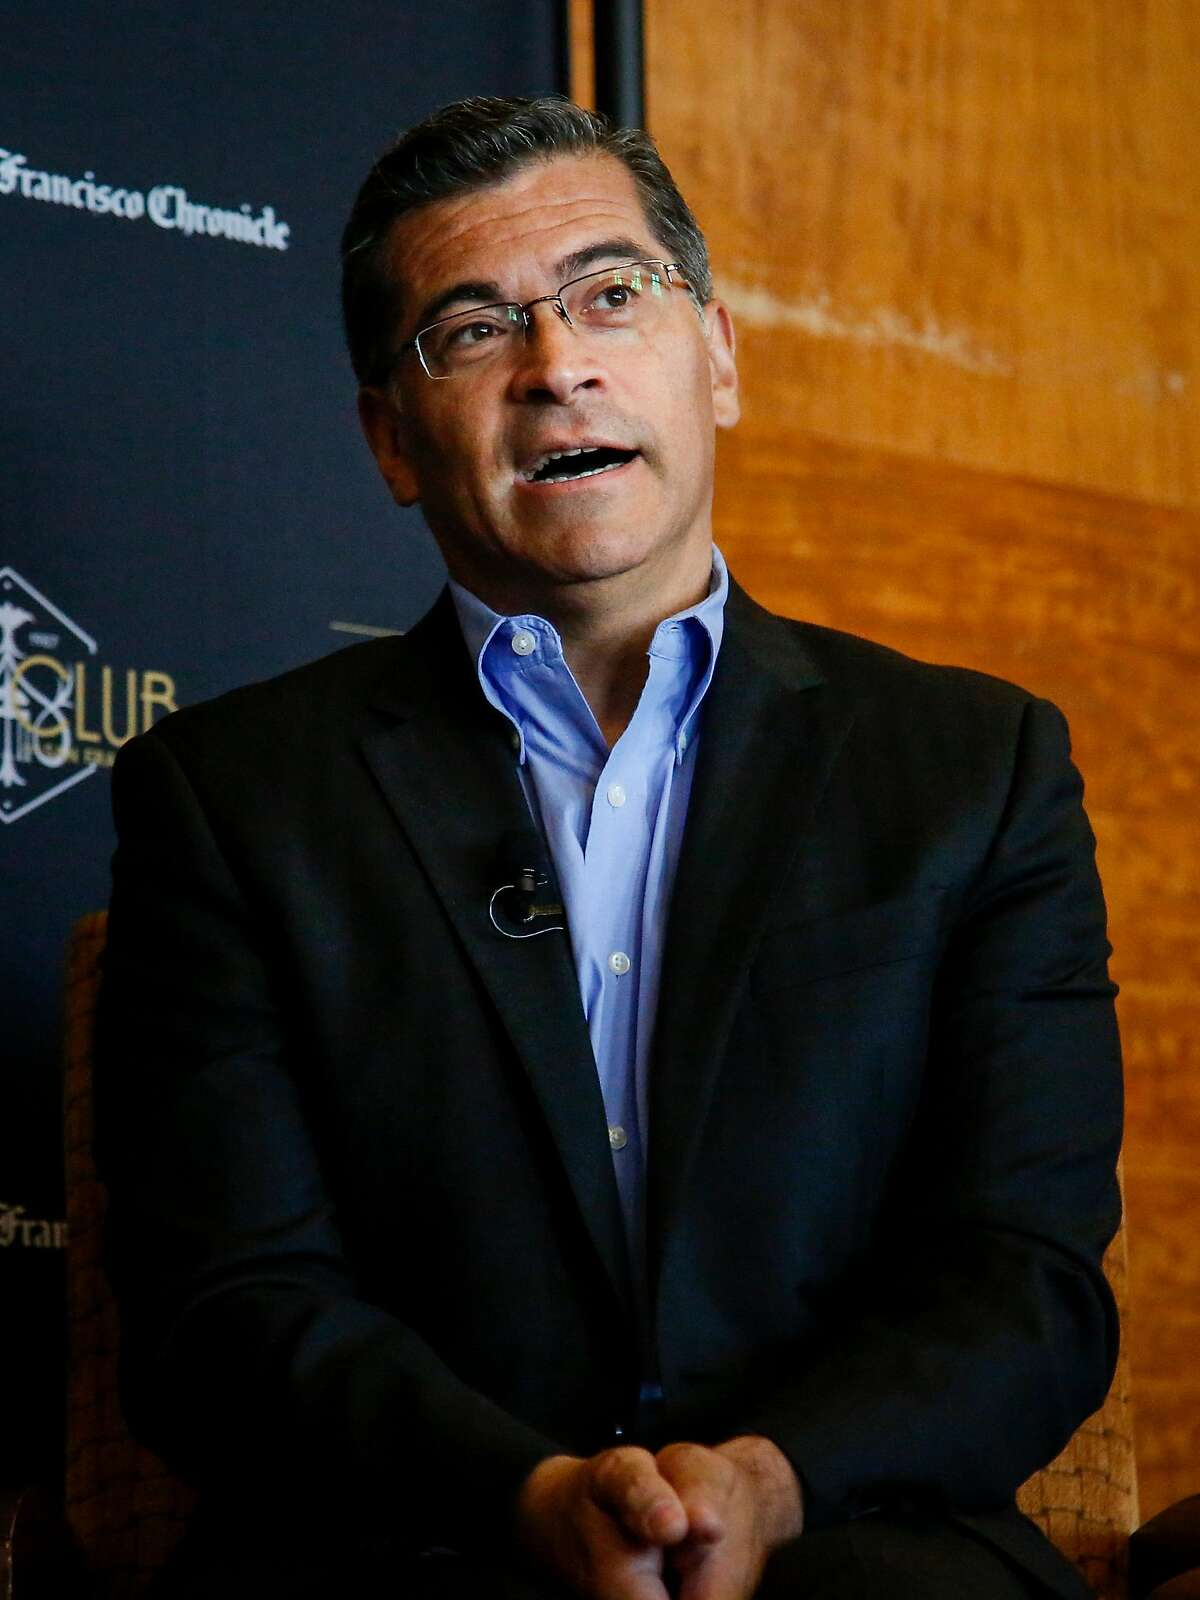 California's Attorney General Xavier Becerra speaks with The Chronicle's John Diaz at the City Club of San Francisco about California's resistance to President Trump's policies in San Francisco on Thursday, June 22, 2017.